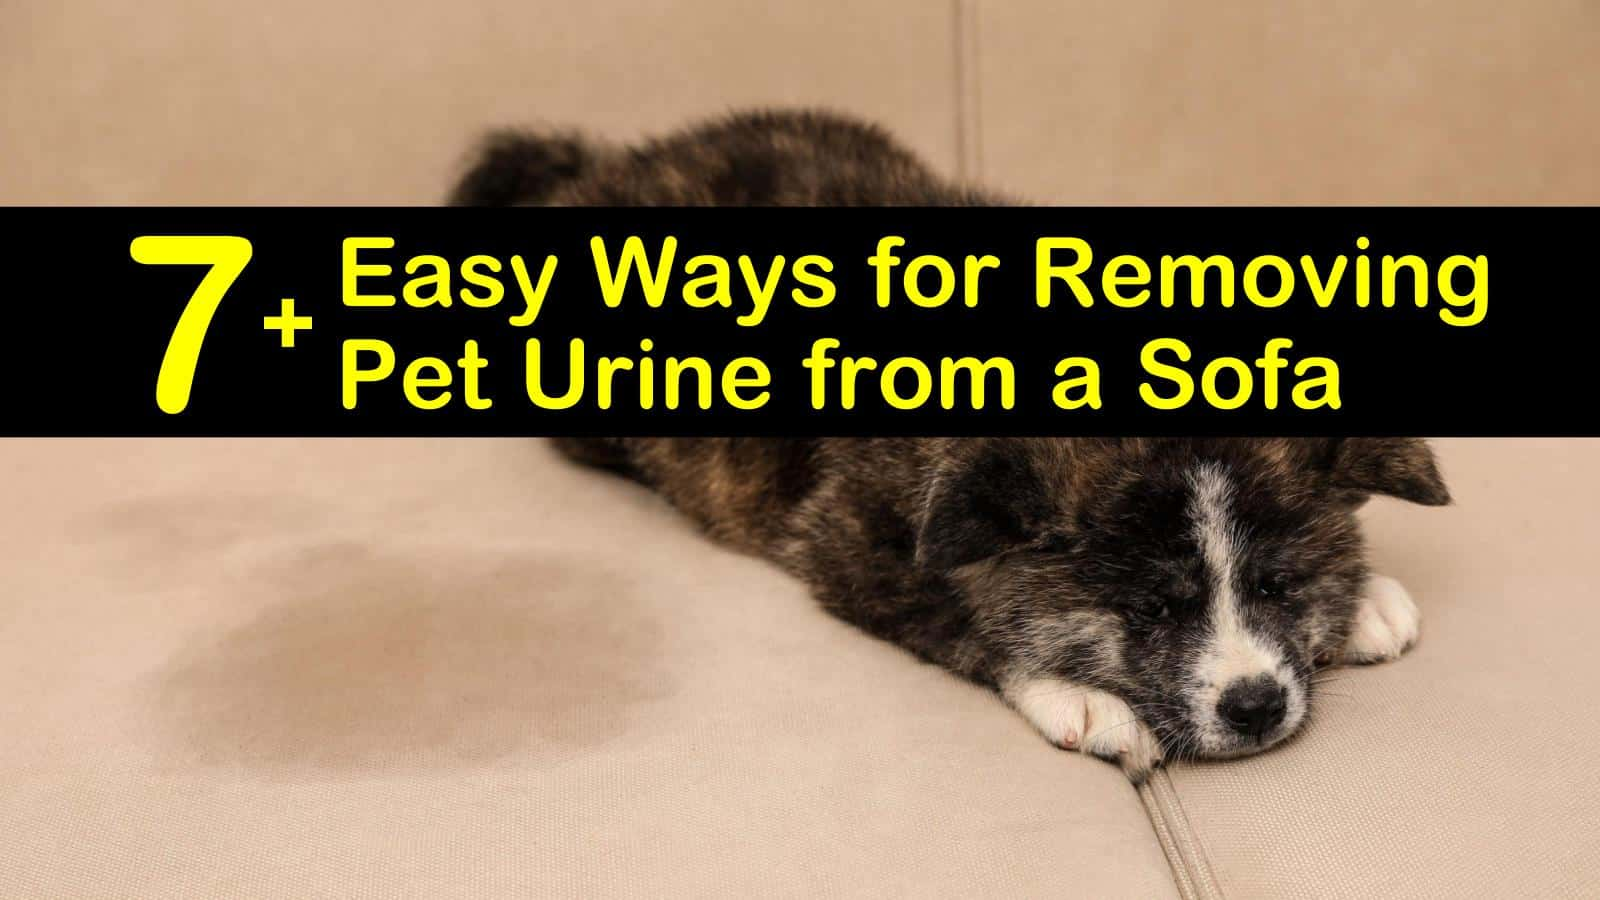 cleaning cat pee from upholstery